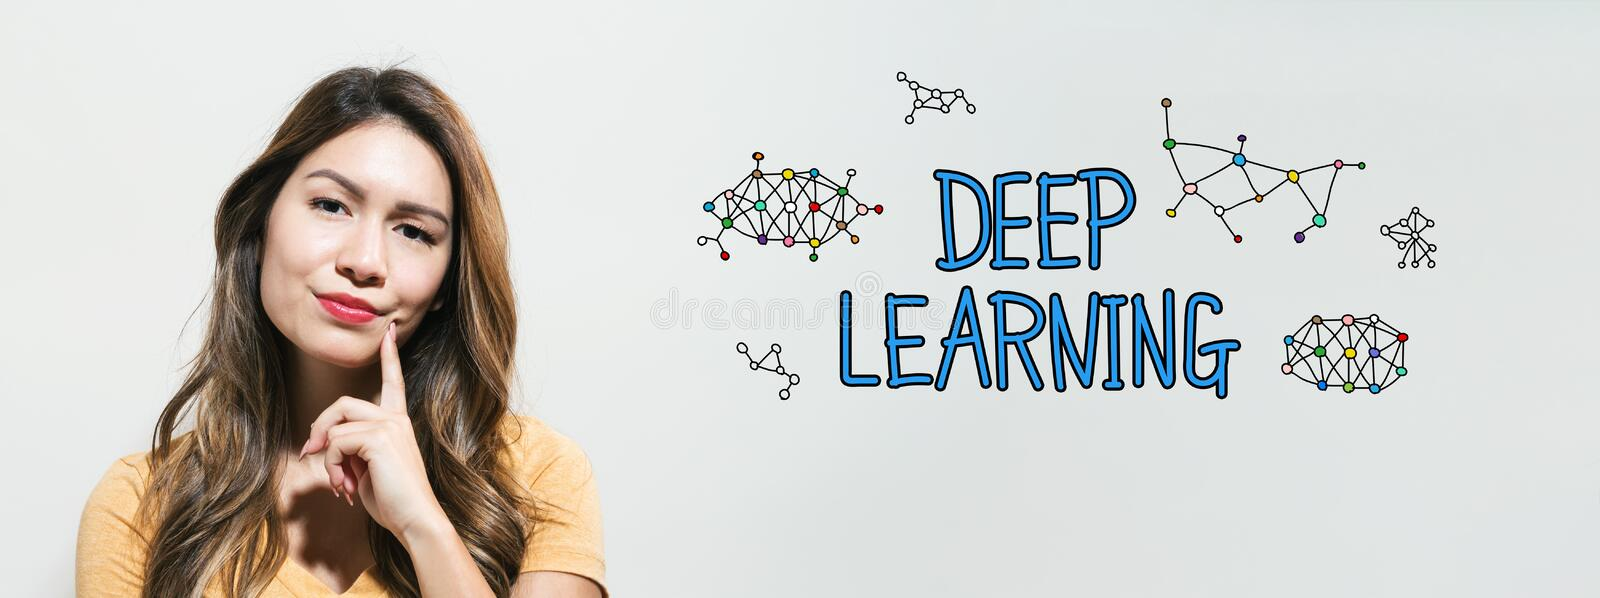 Deep learning with young woman. In a thoughtful fac royalty free stock photography